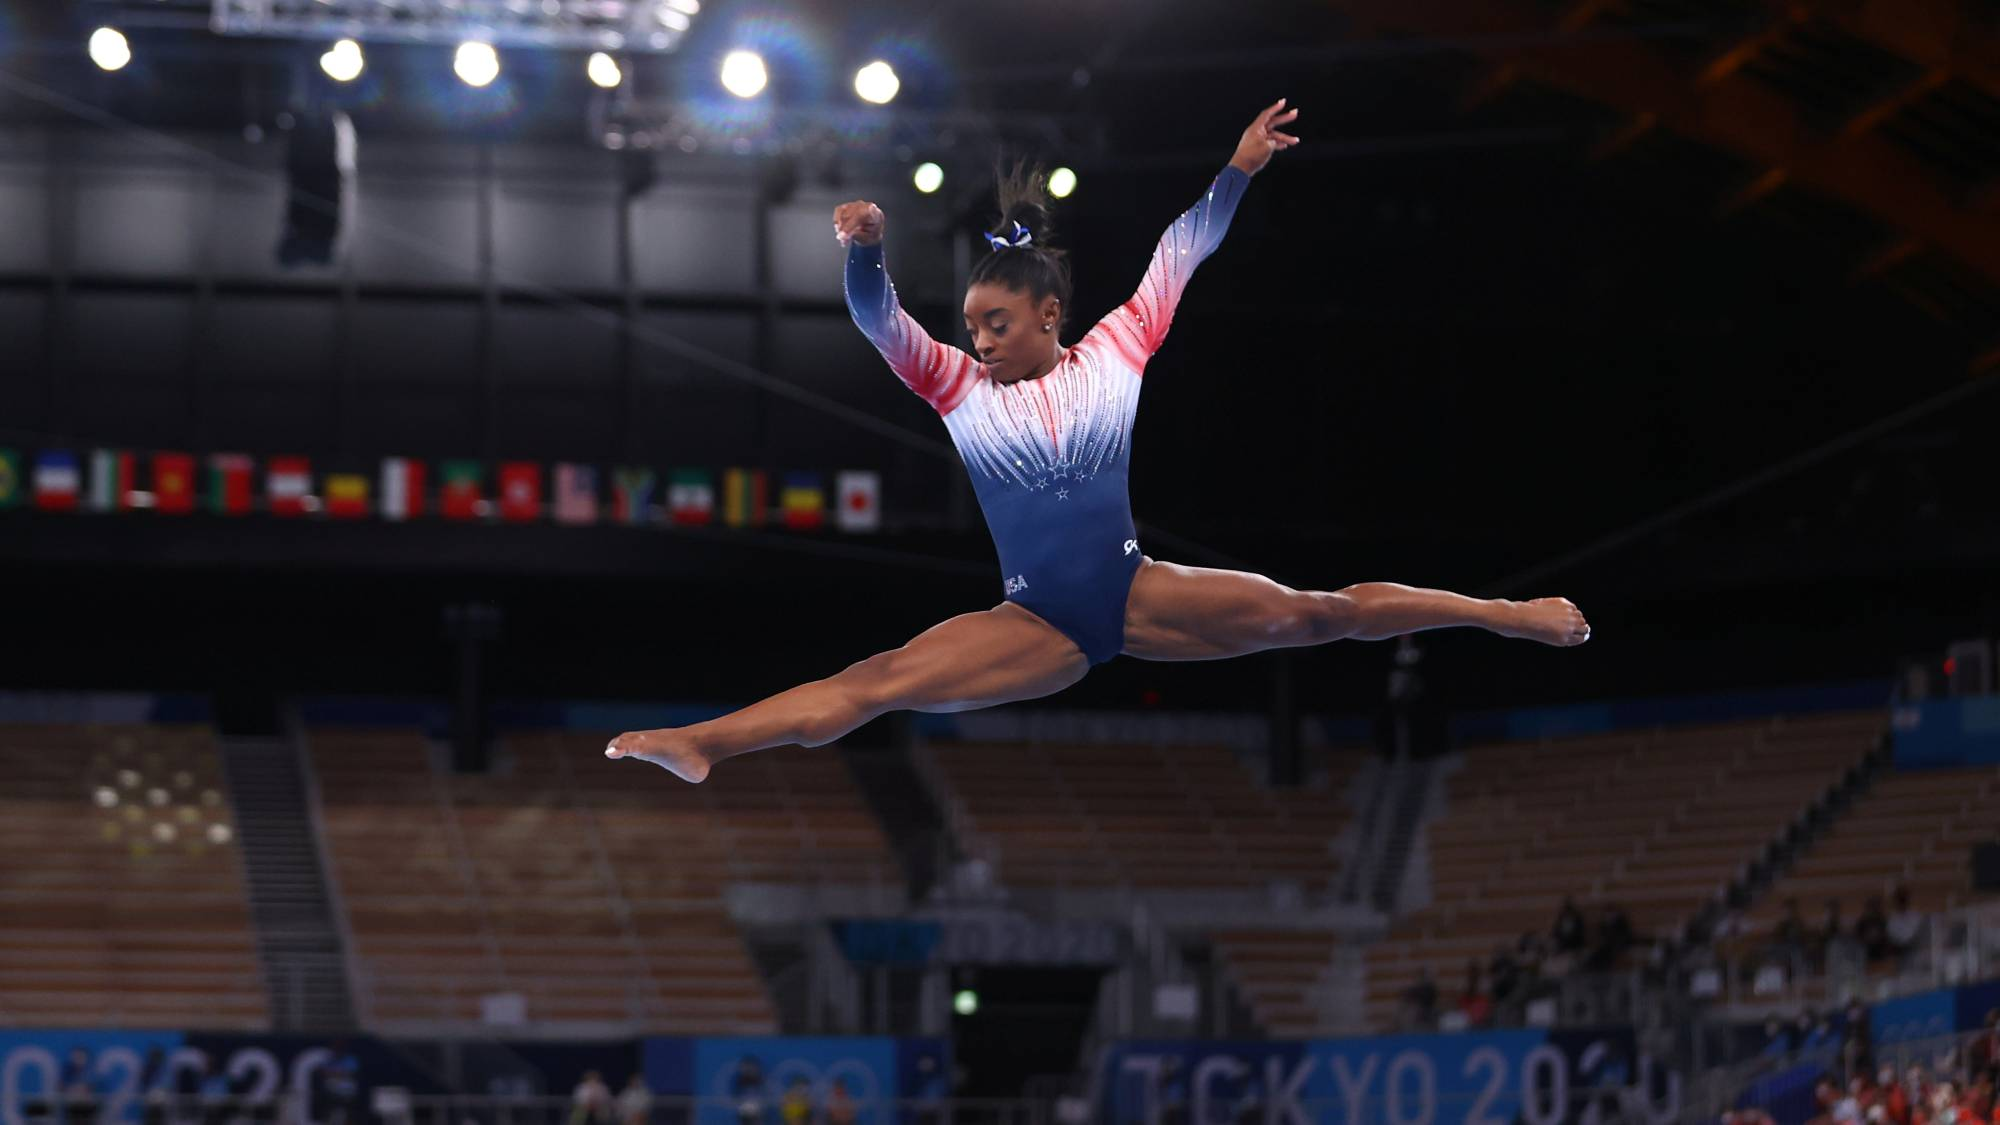 Simone Biles of the United States in action on the balance beam on Tuesday at Ariake Gymnastics Centre in Tokyo. | REUTERS